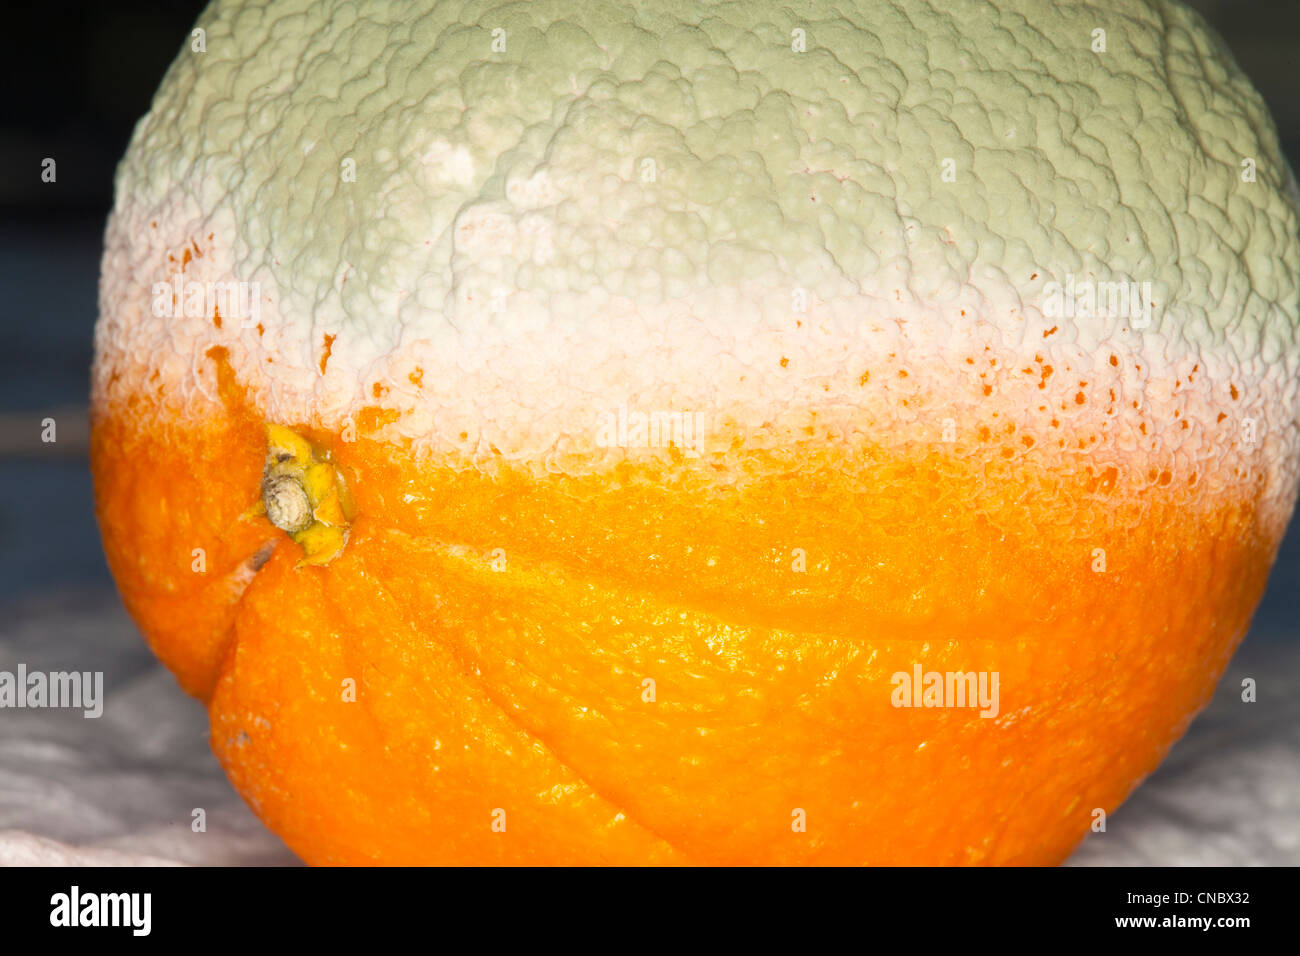 mold,orange,citrus,fruit,green,food, - Stock Image